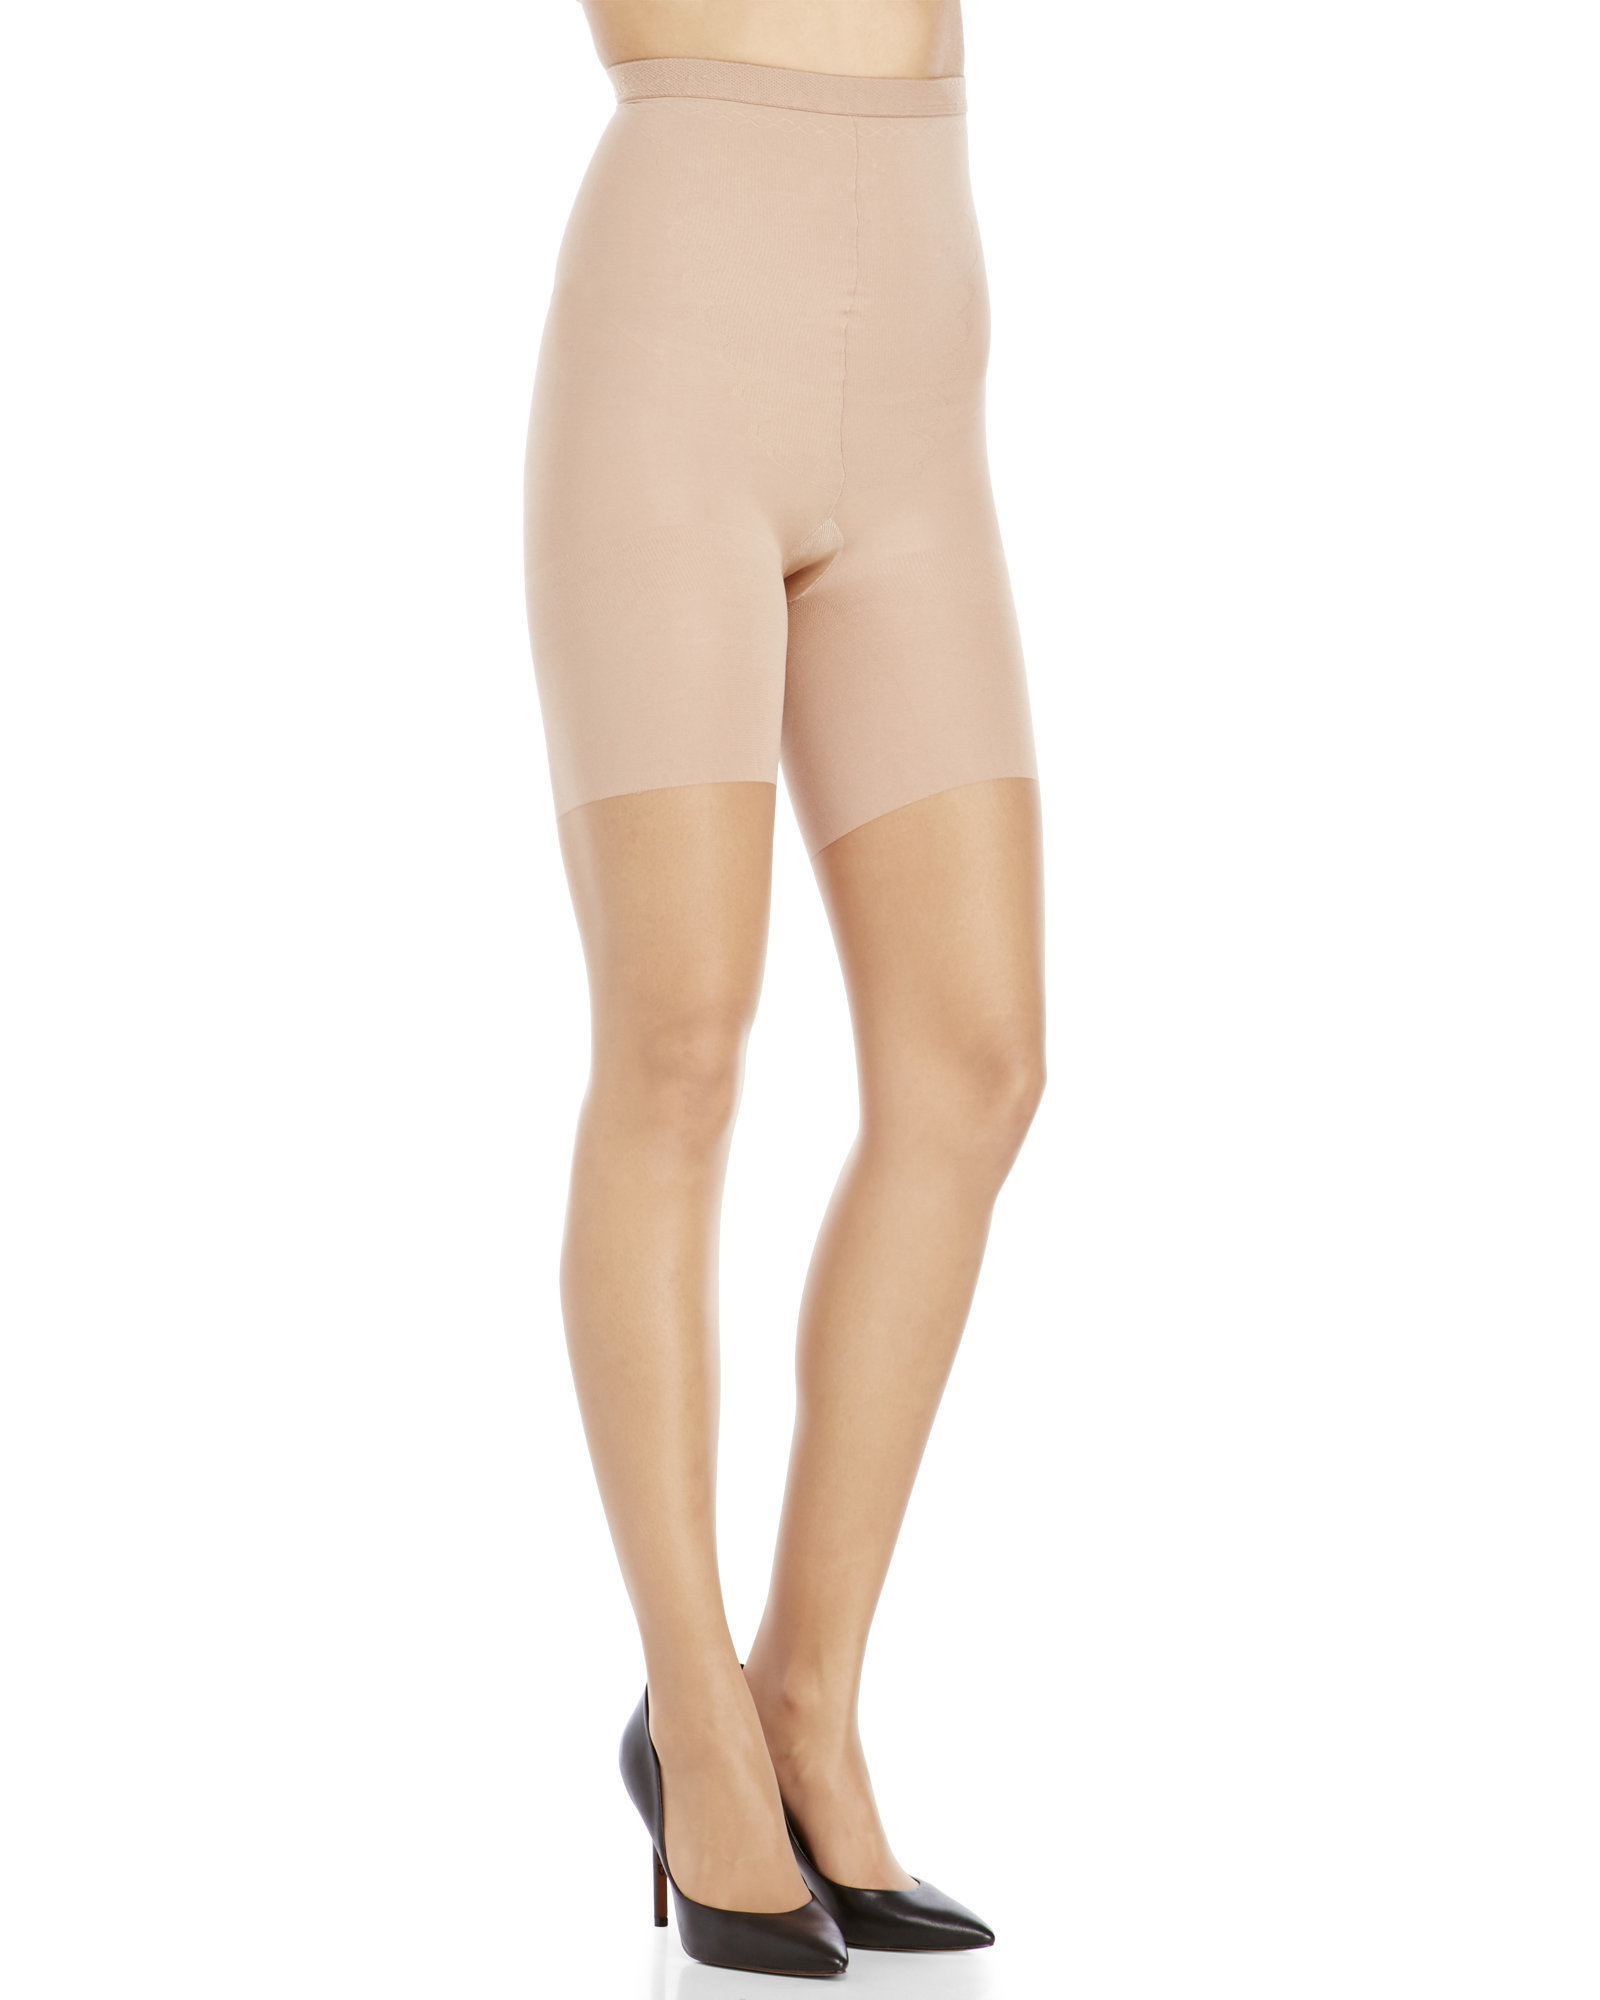 d53287406df14 Lyst - Spanx High-Waist Sheer Tights in Natural